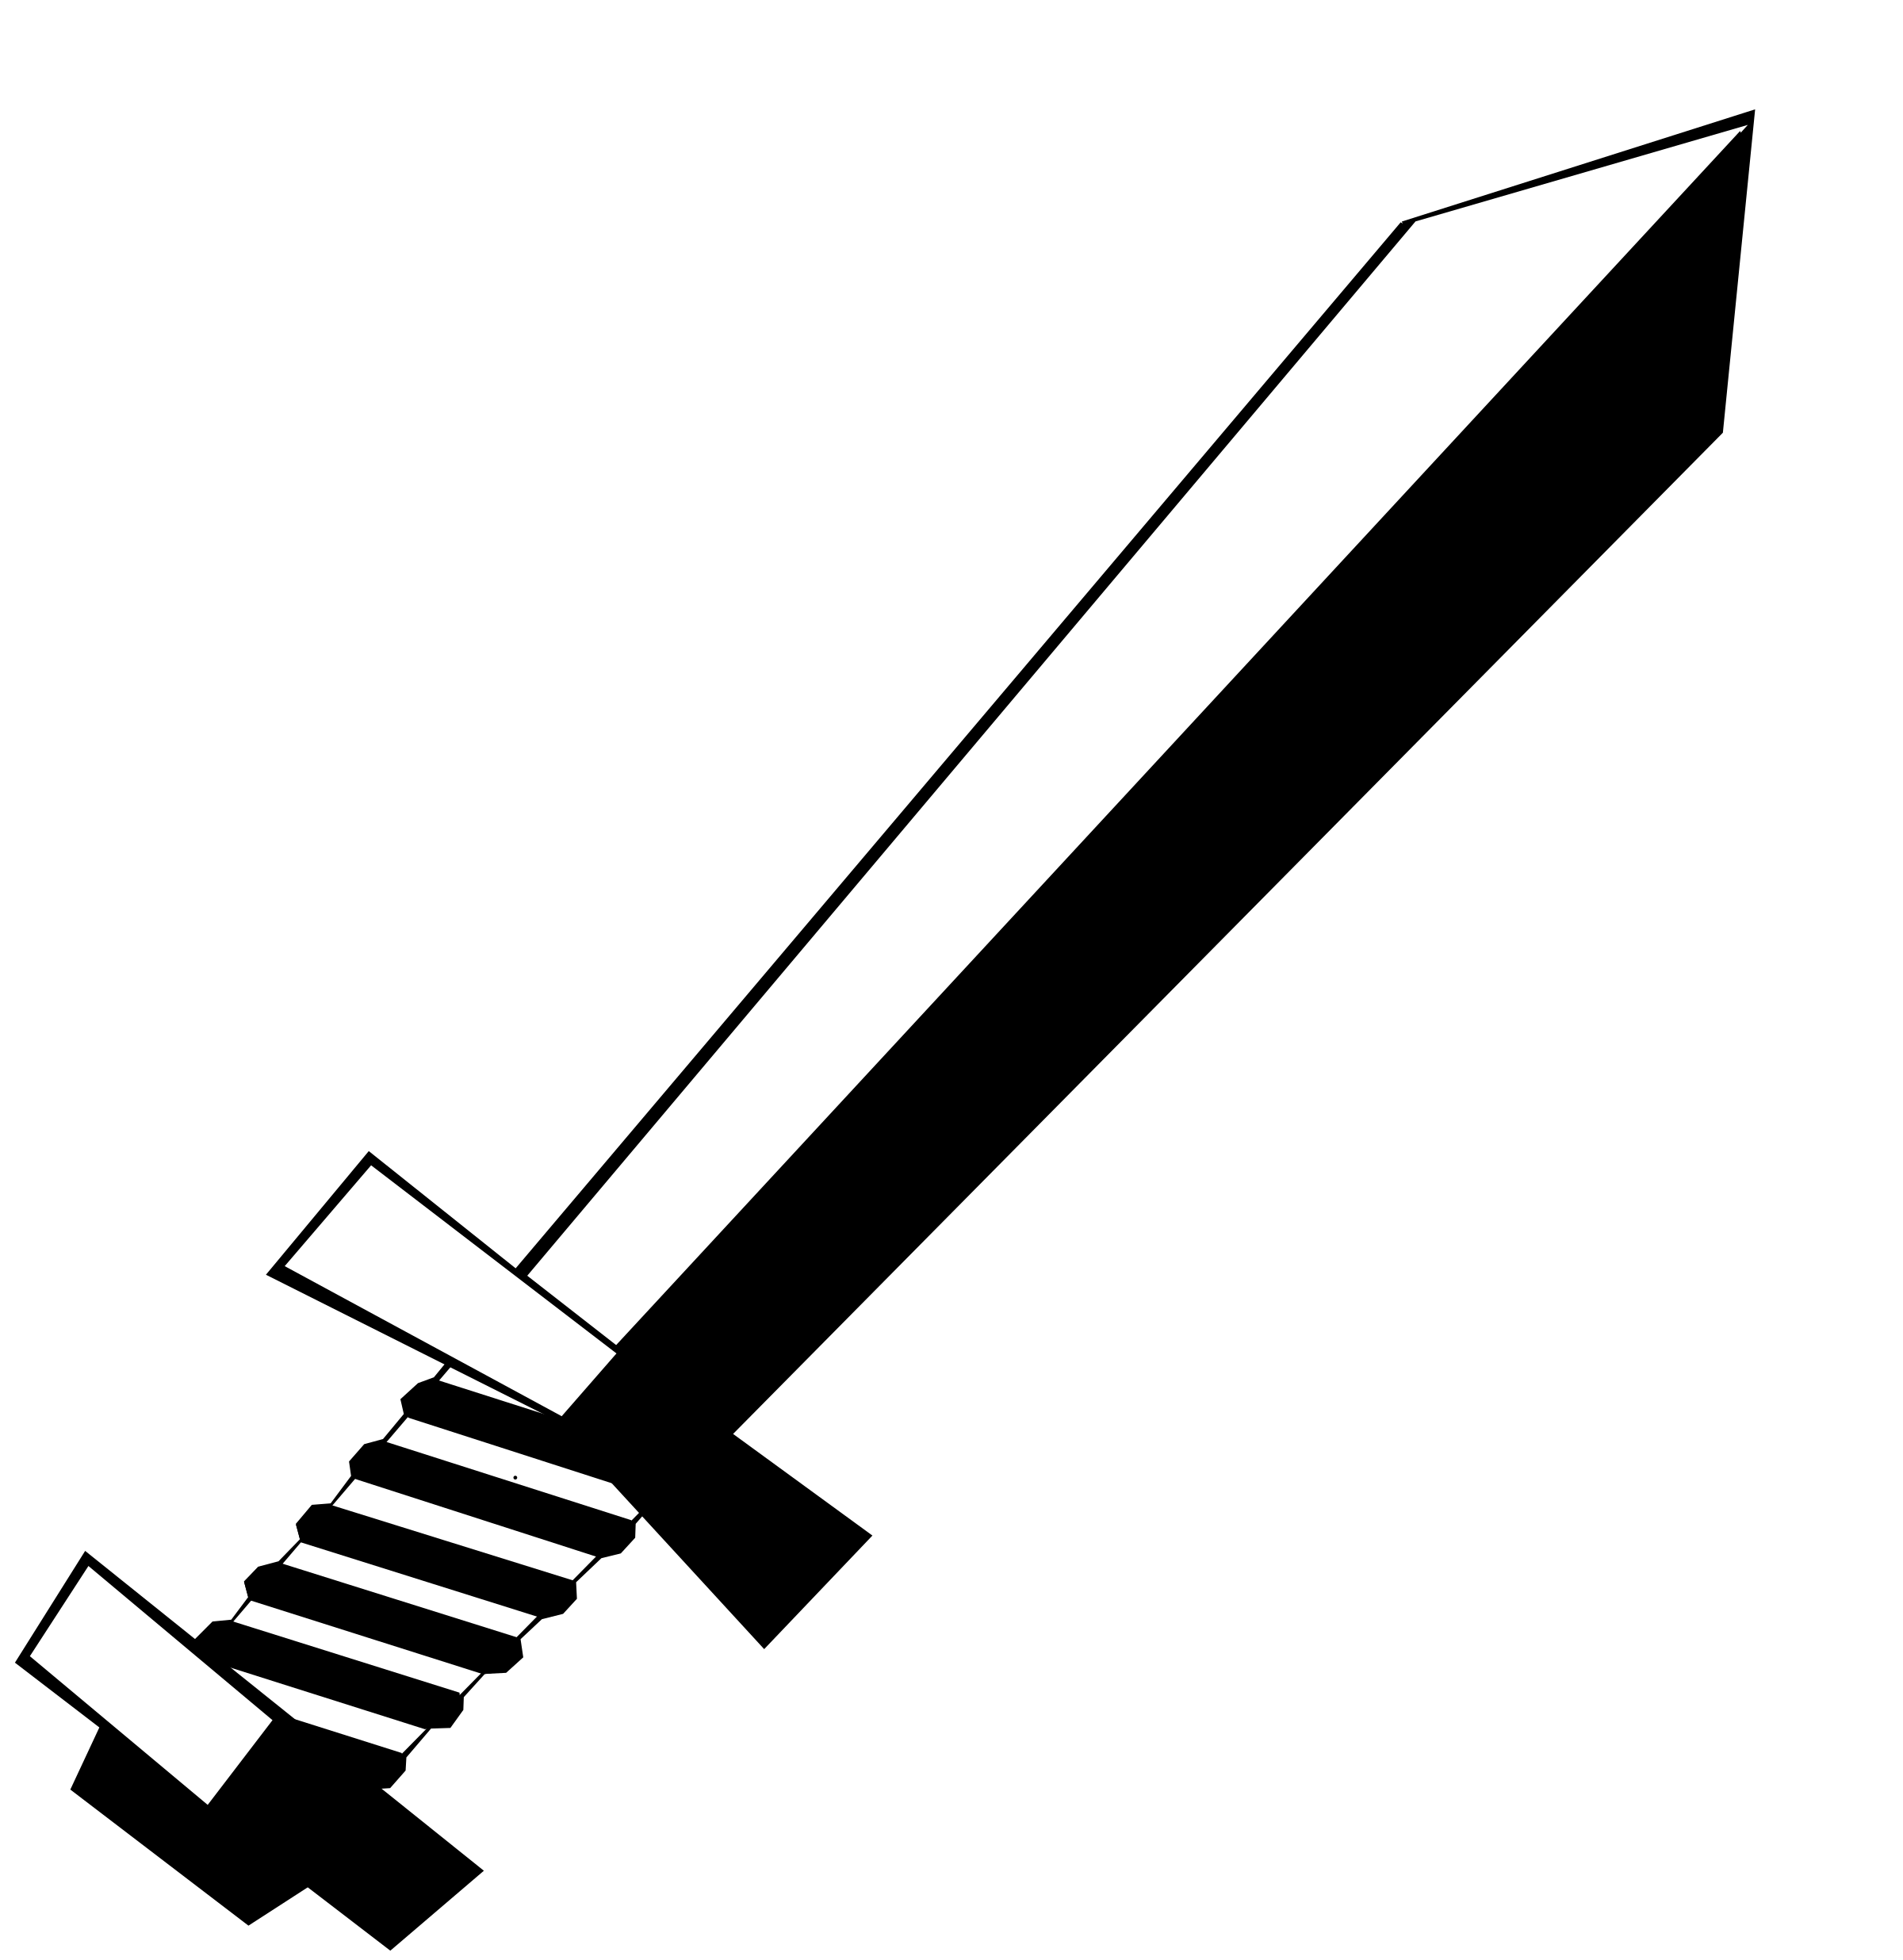 Toy Sword (Black and White) by thorzuul